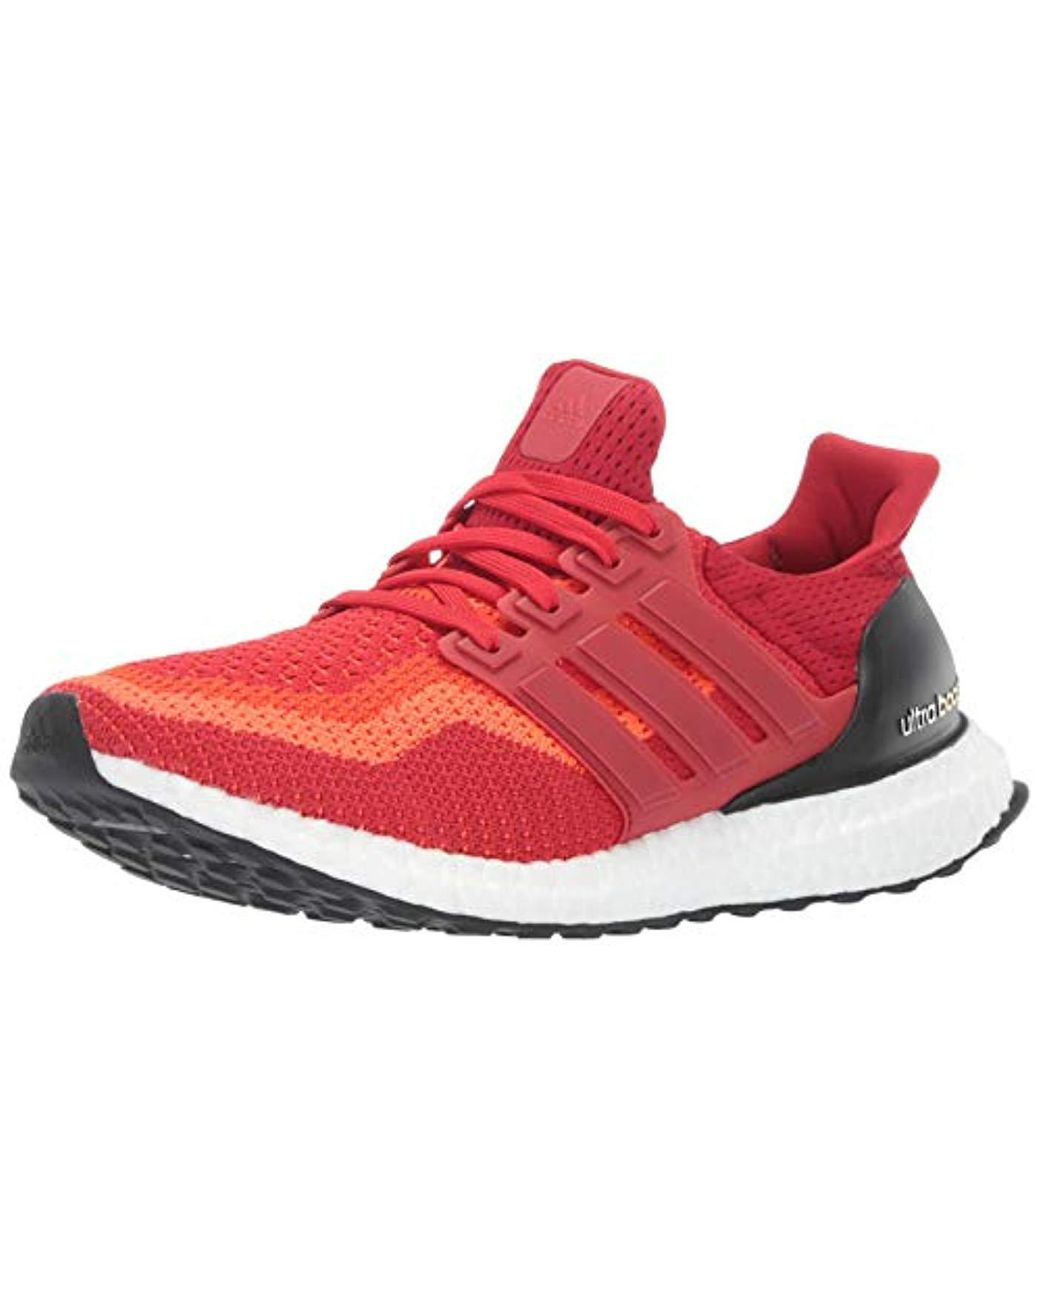 af899566dcede Lyst - adidas Performance Ultra Boost M Running Shoe in Red for Men